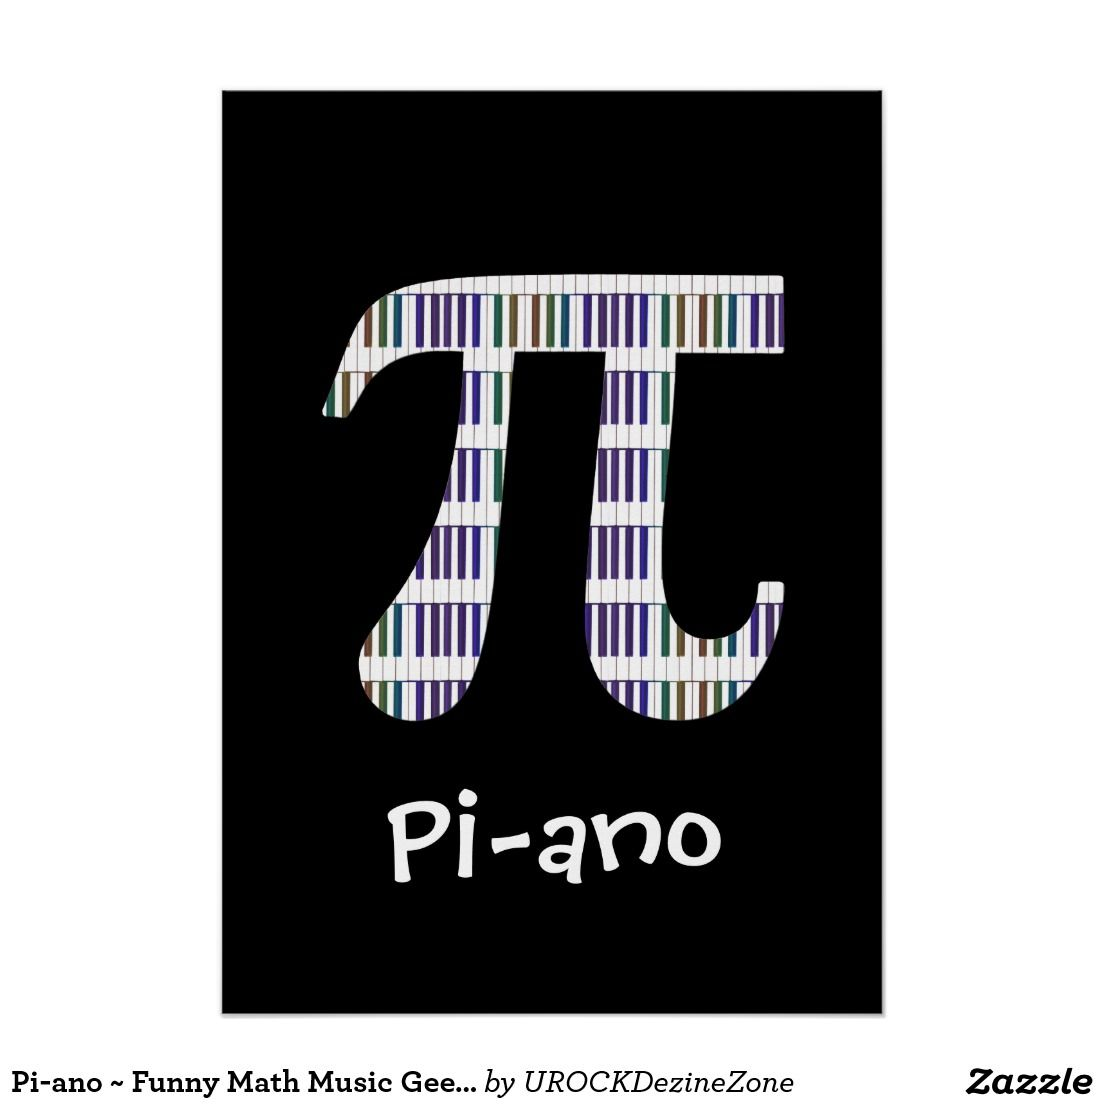 Pi ano funny math music geek poster variation zazzle stuff pi ano funny math music geek poster variation created by urockdezinezone biocorpaavc Image collections